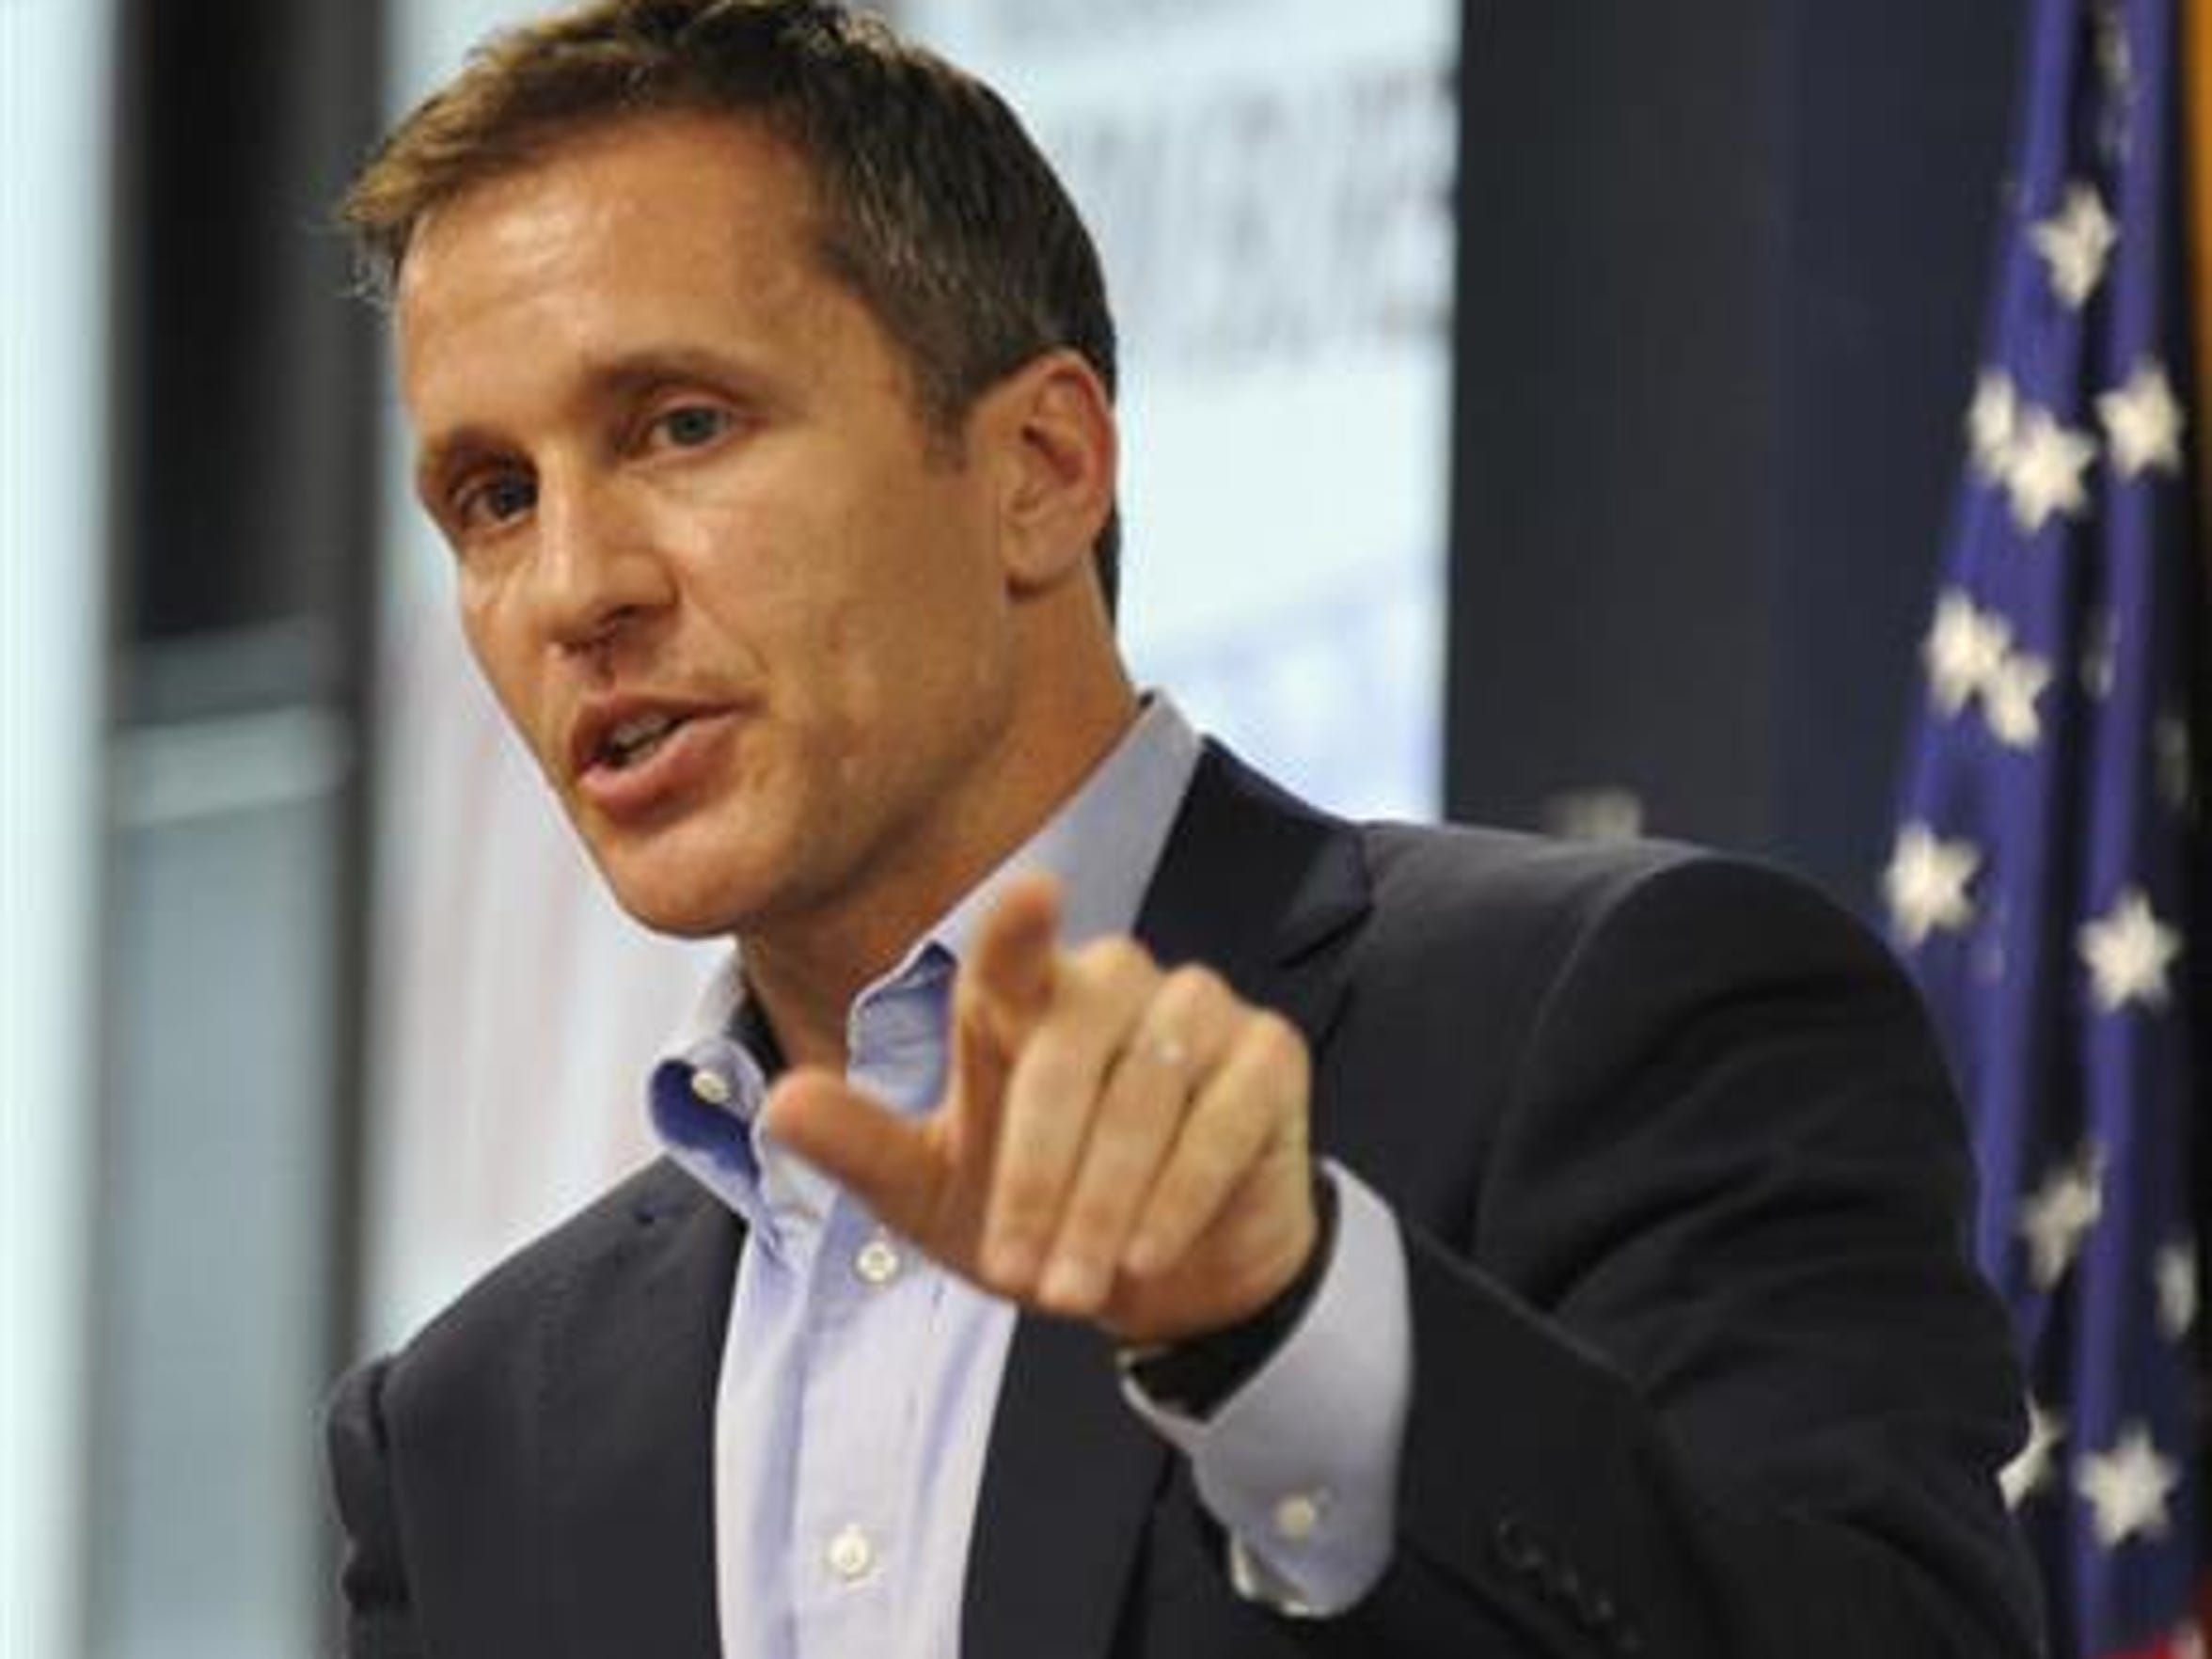 Gov. Eric Greitens has publicly admitted to a 2015 affairbut denied threatening to use a semi-nude picture to blackmail the woman, who has avoided comment and asked for privacy.